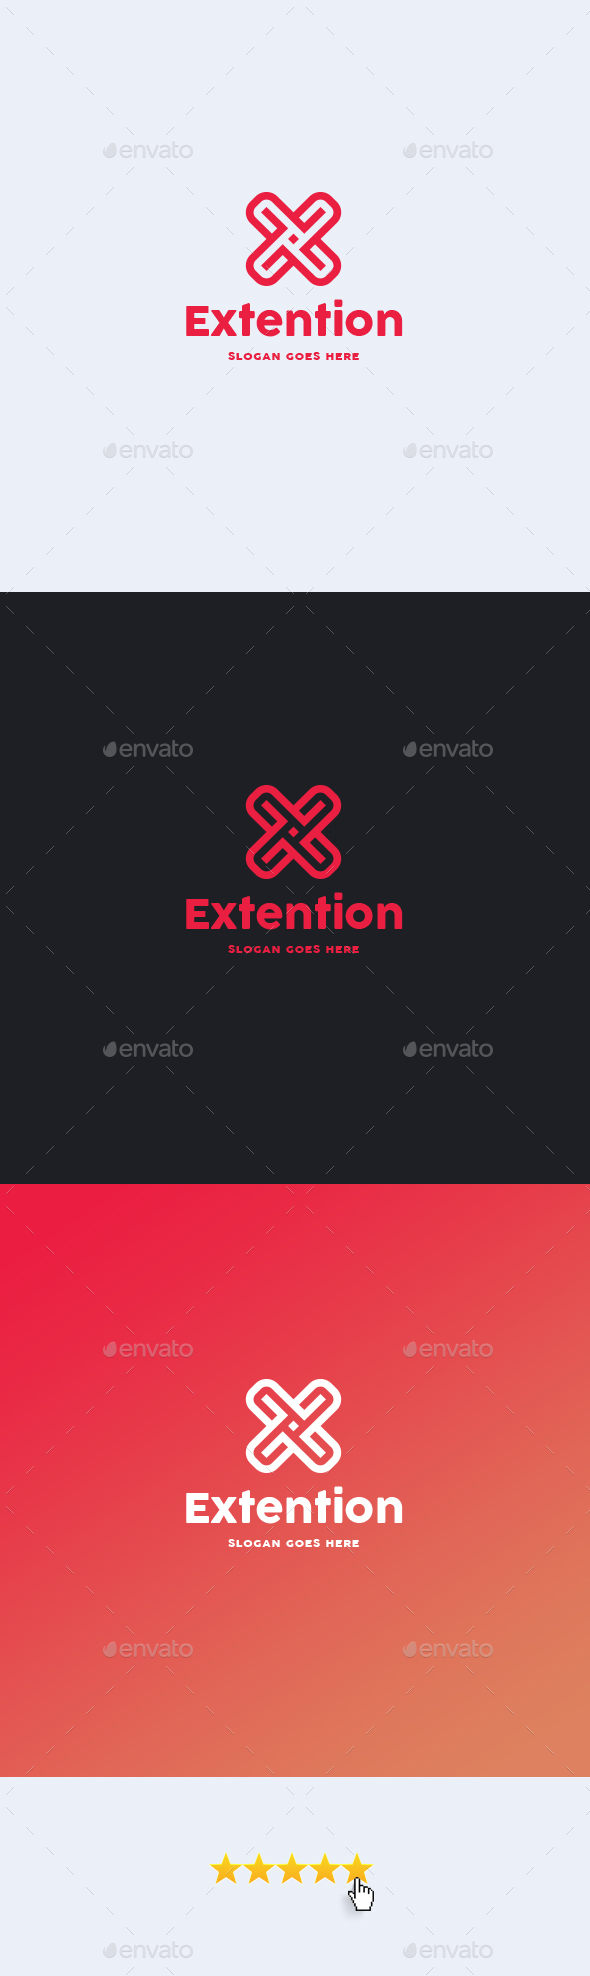 Extention • Letter X Logo Template